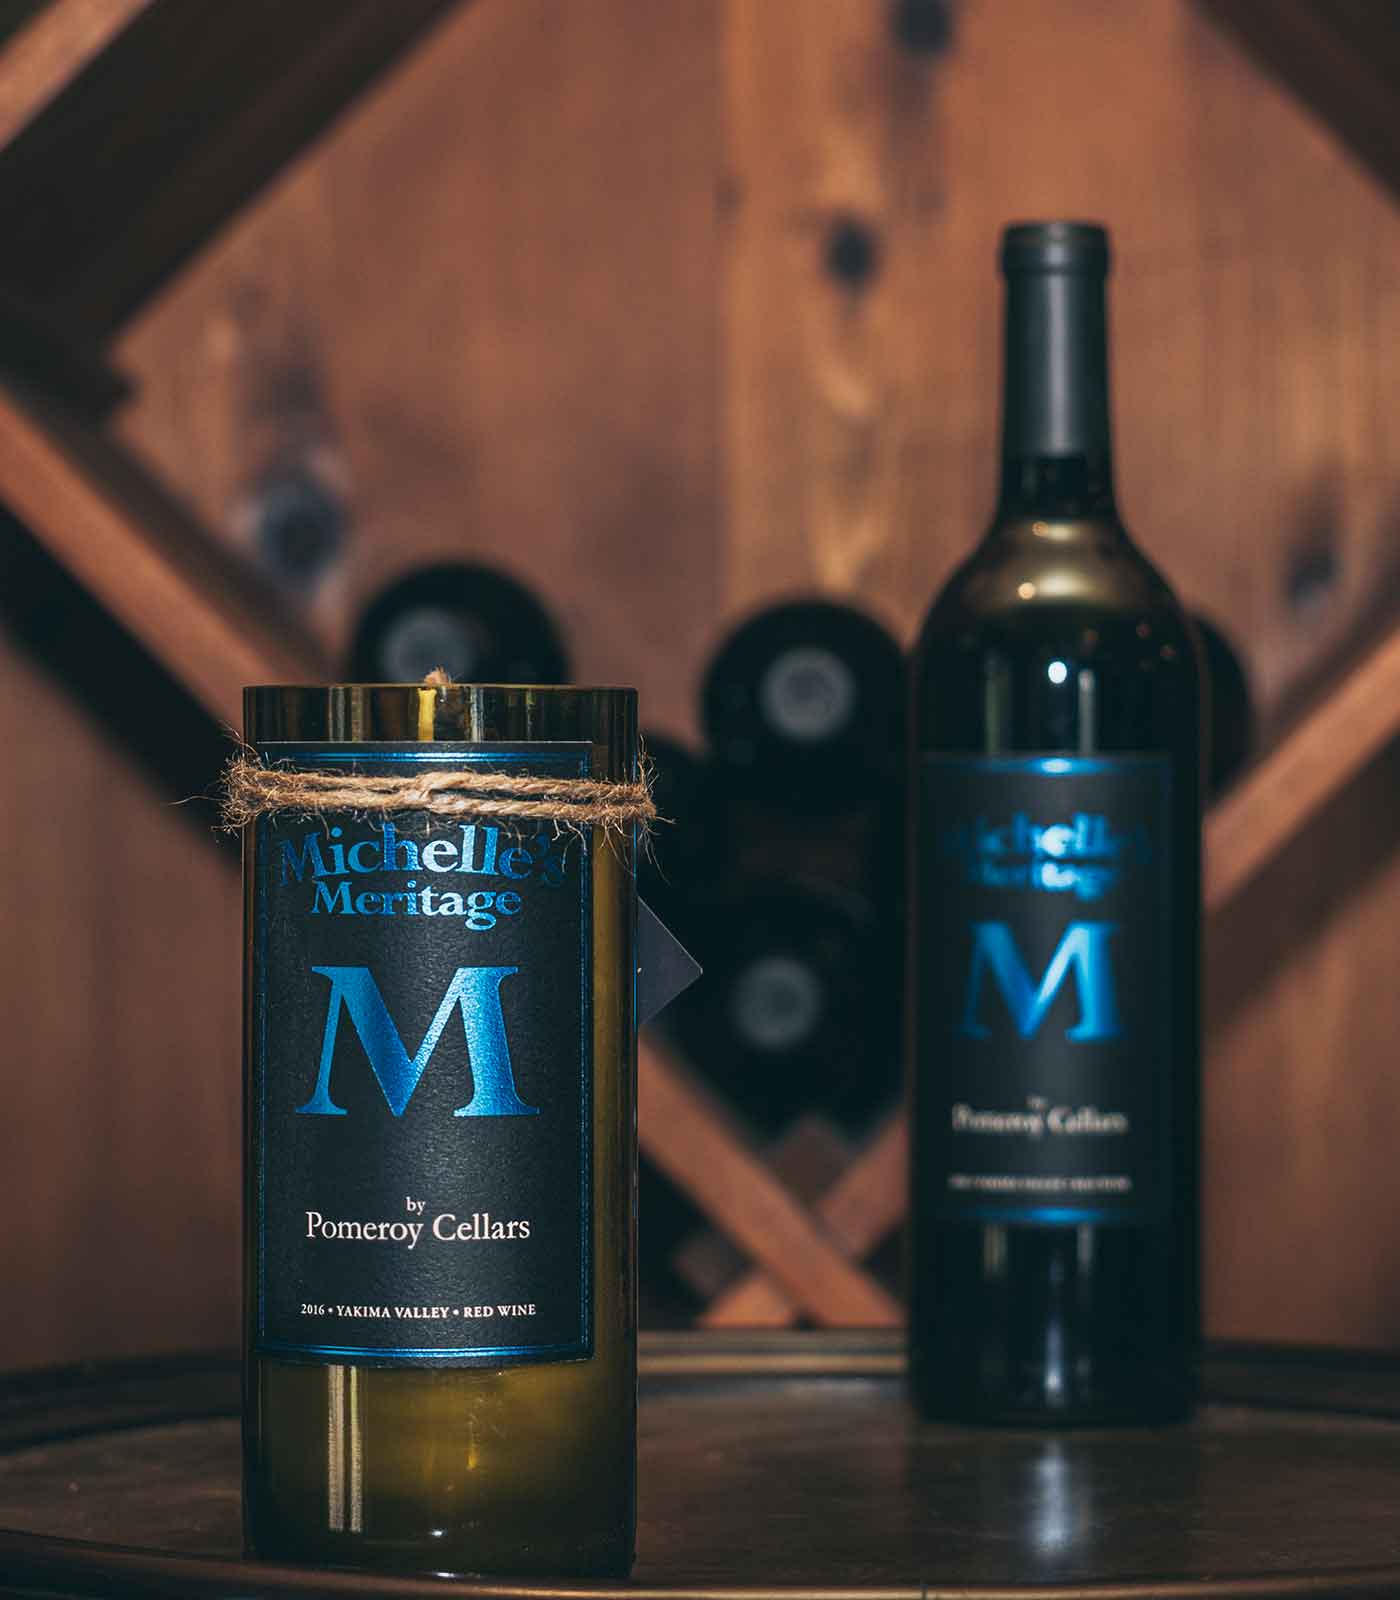 Landscape of Luxurious Wine Bottle and Packaging for Corporate Gifts at Pomeroy Cellars